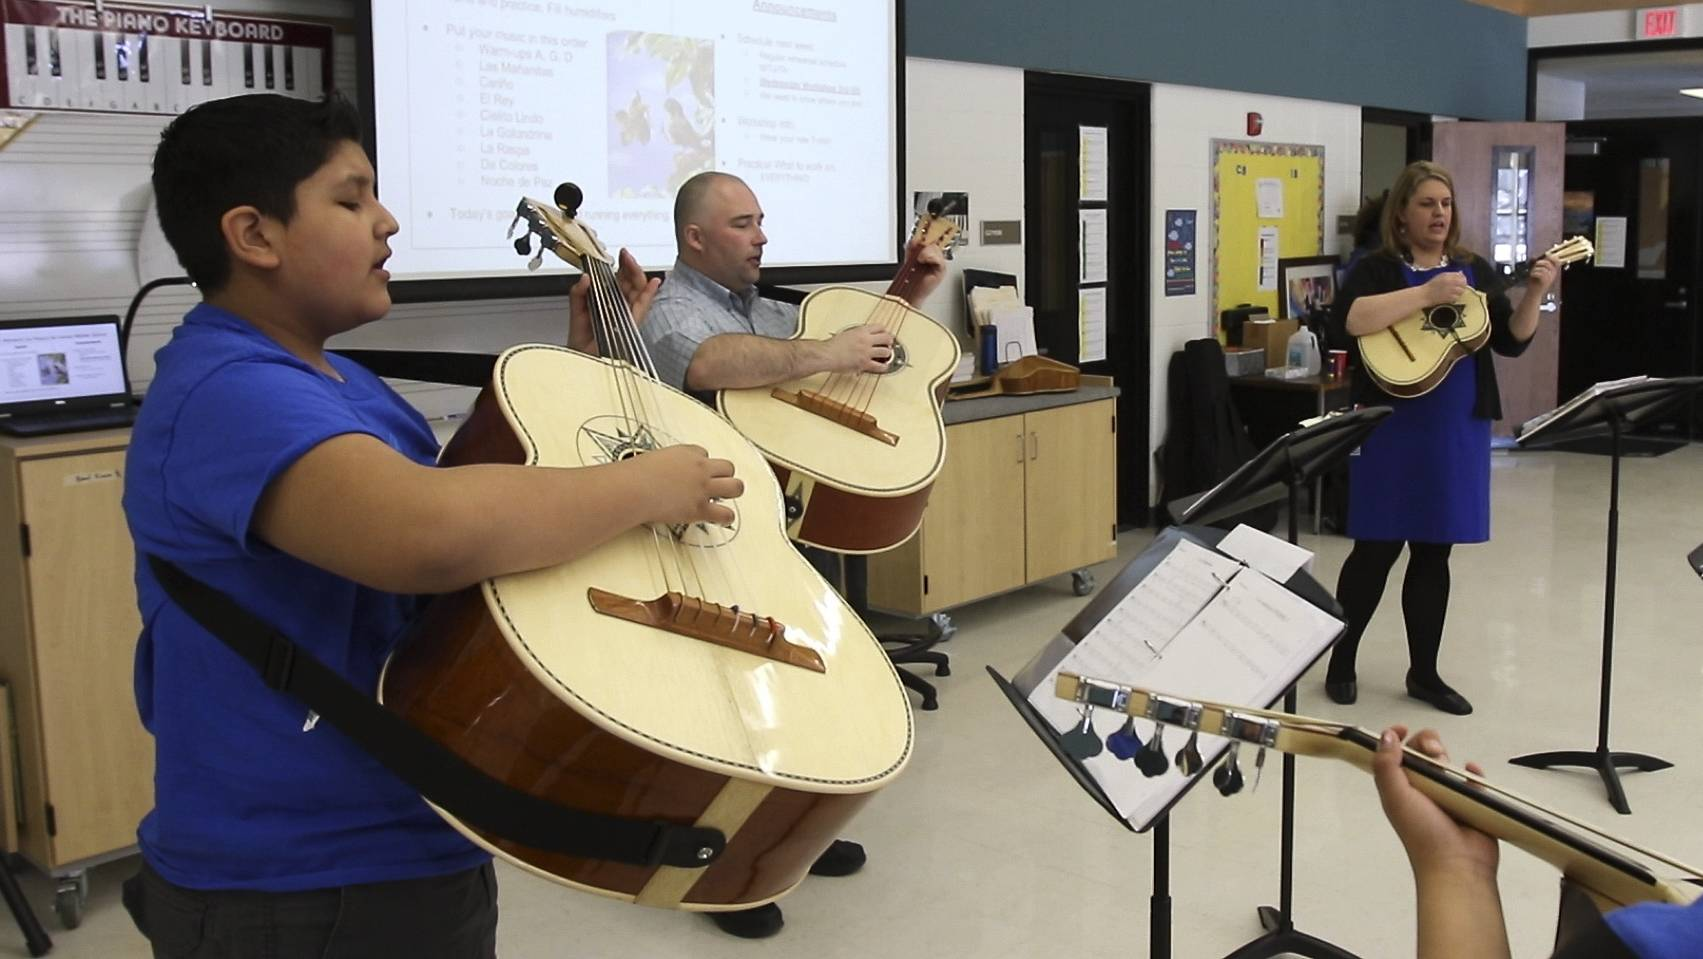 Left to right, Jordan Magna, 6th-grader, James Wallace, director, and Janet Sikma, orchestra director, lead the mariachi band at Leman Middle School in West Chicago.